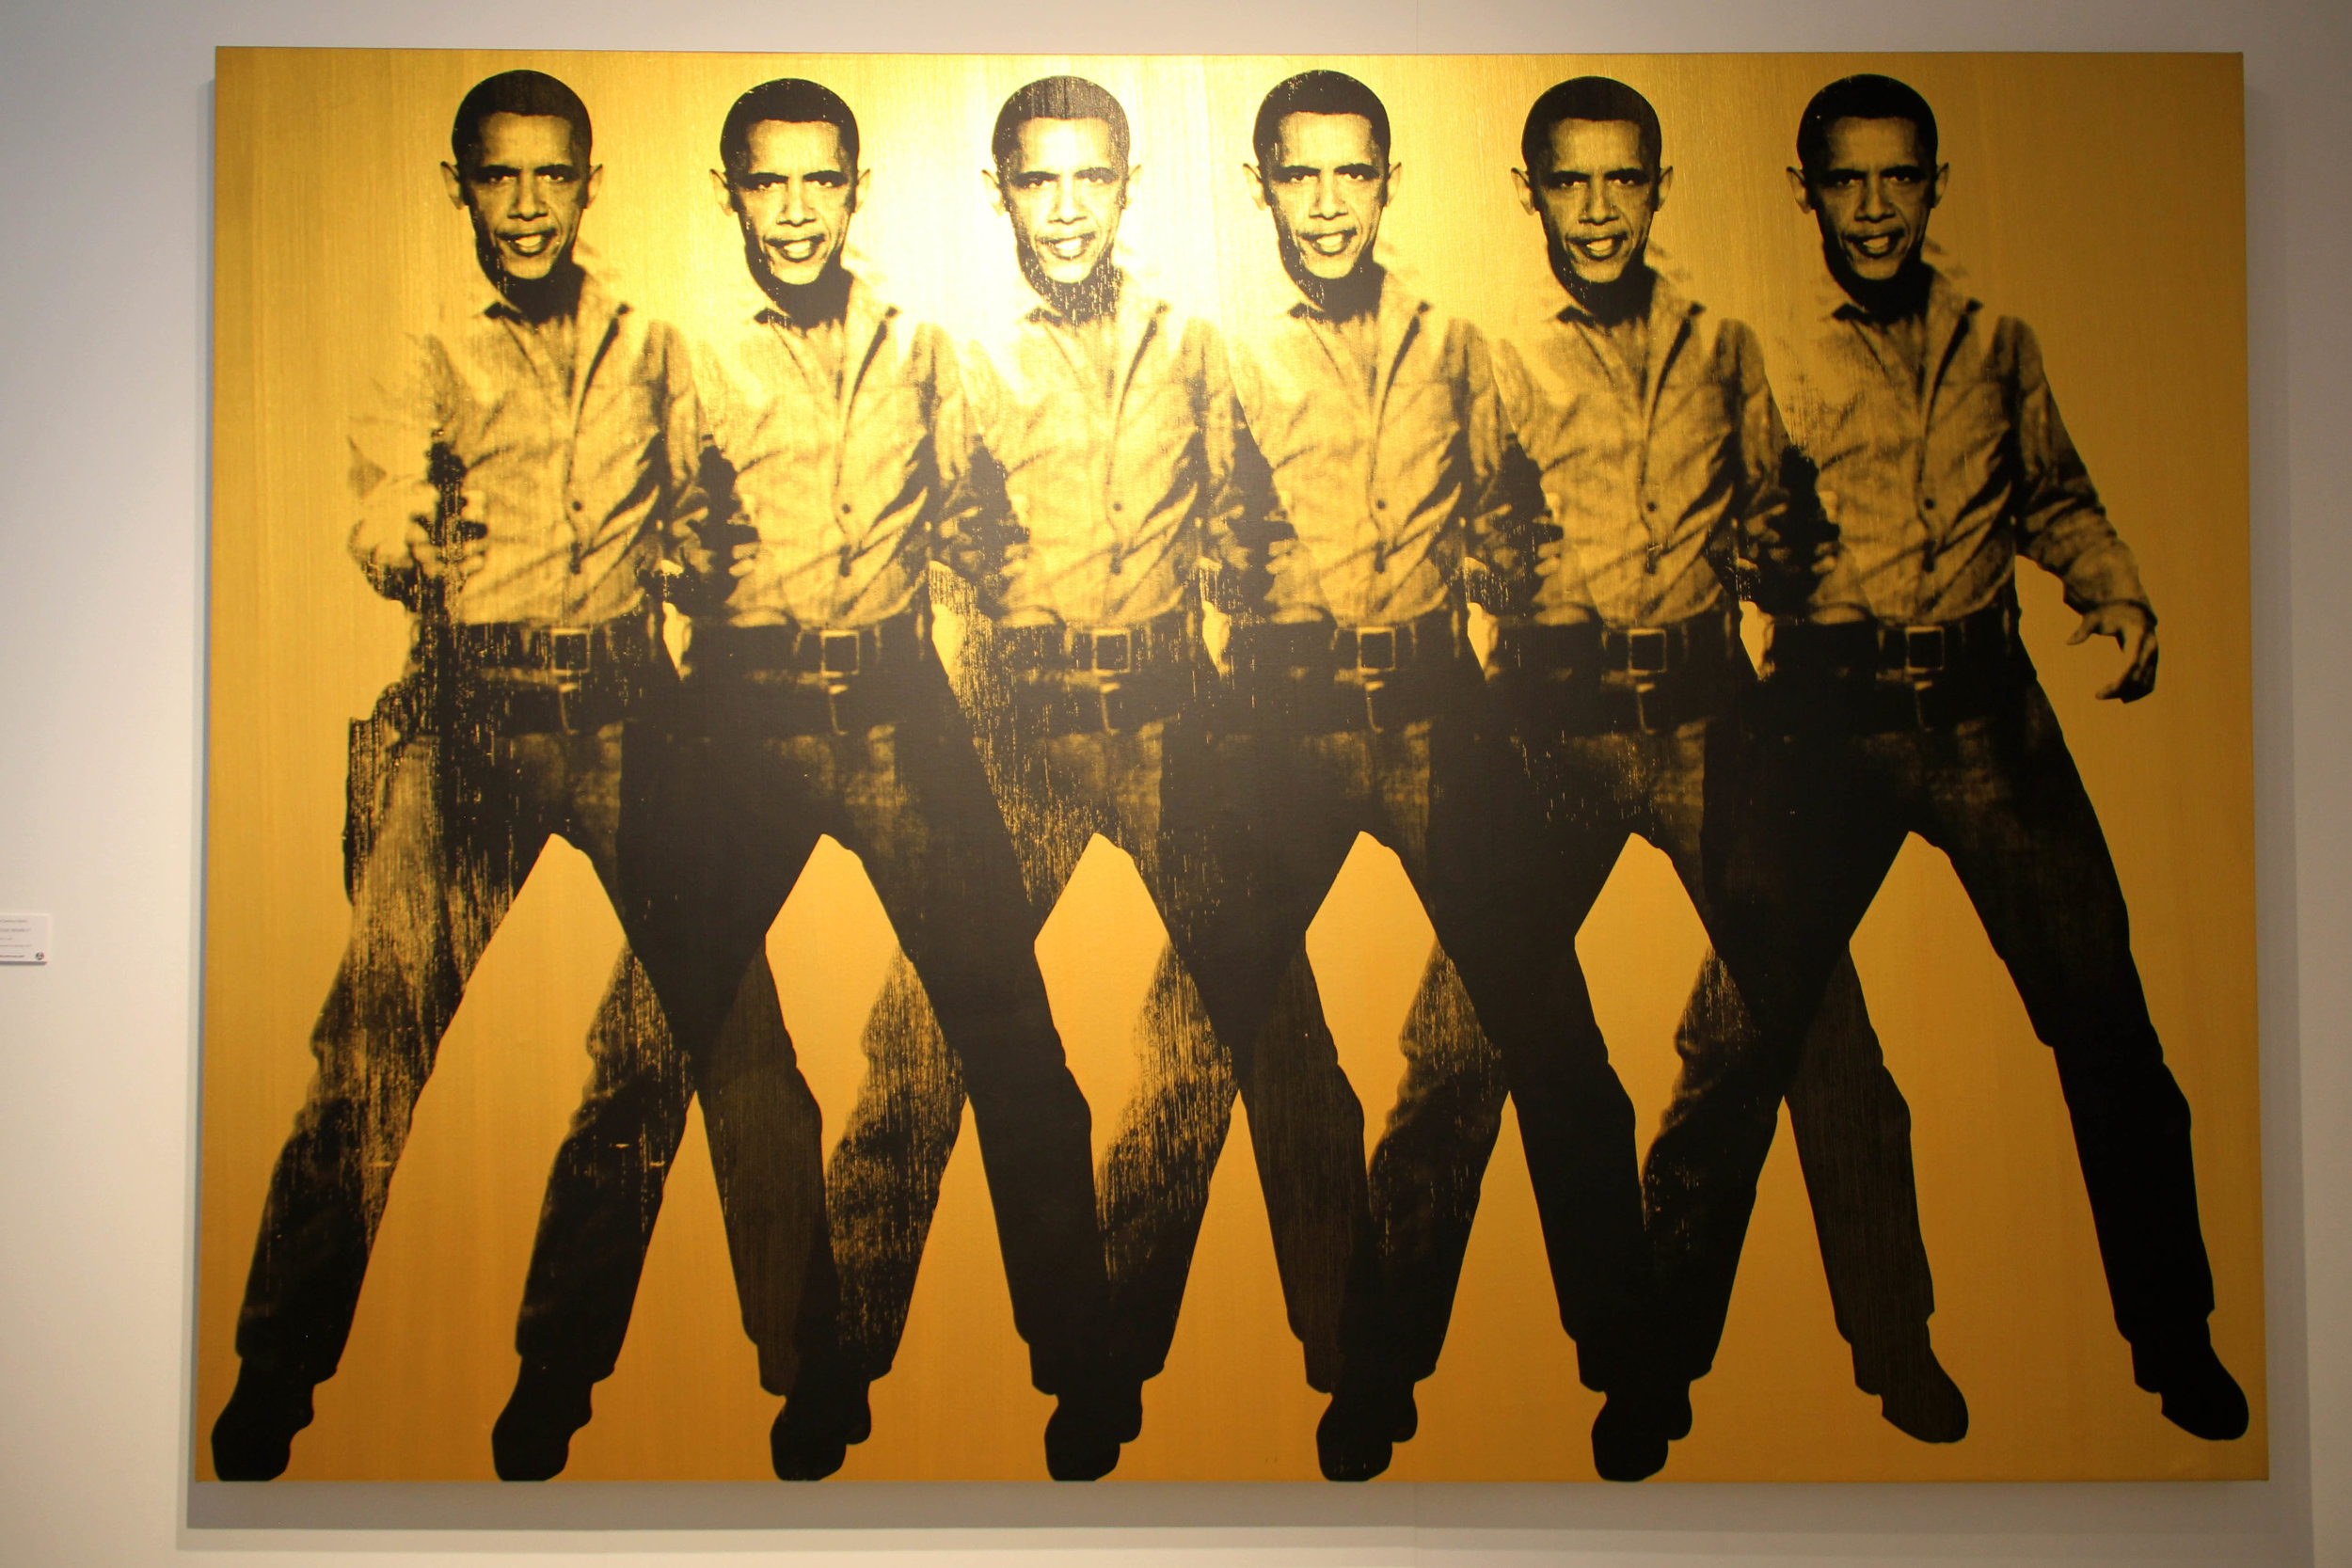 Obama Cowboy (Gold), KNOWLEDGE BENNETT, AVENUE DES ARTS GALLERY @CONTEXT